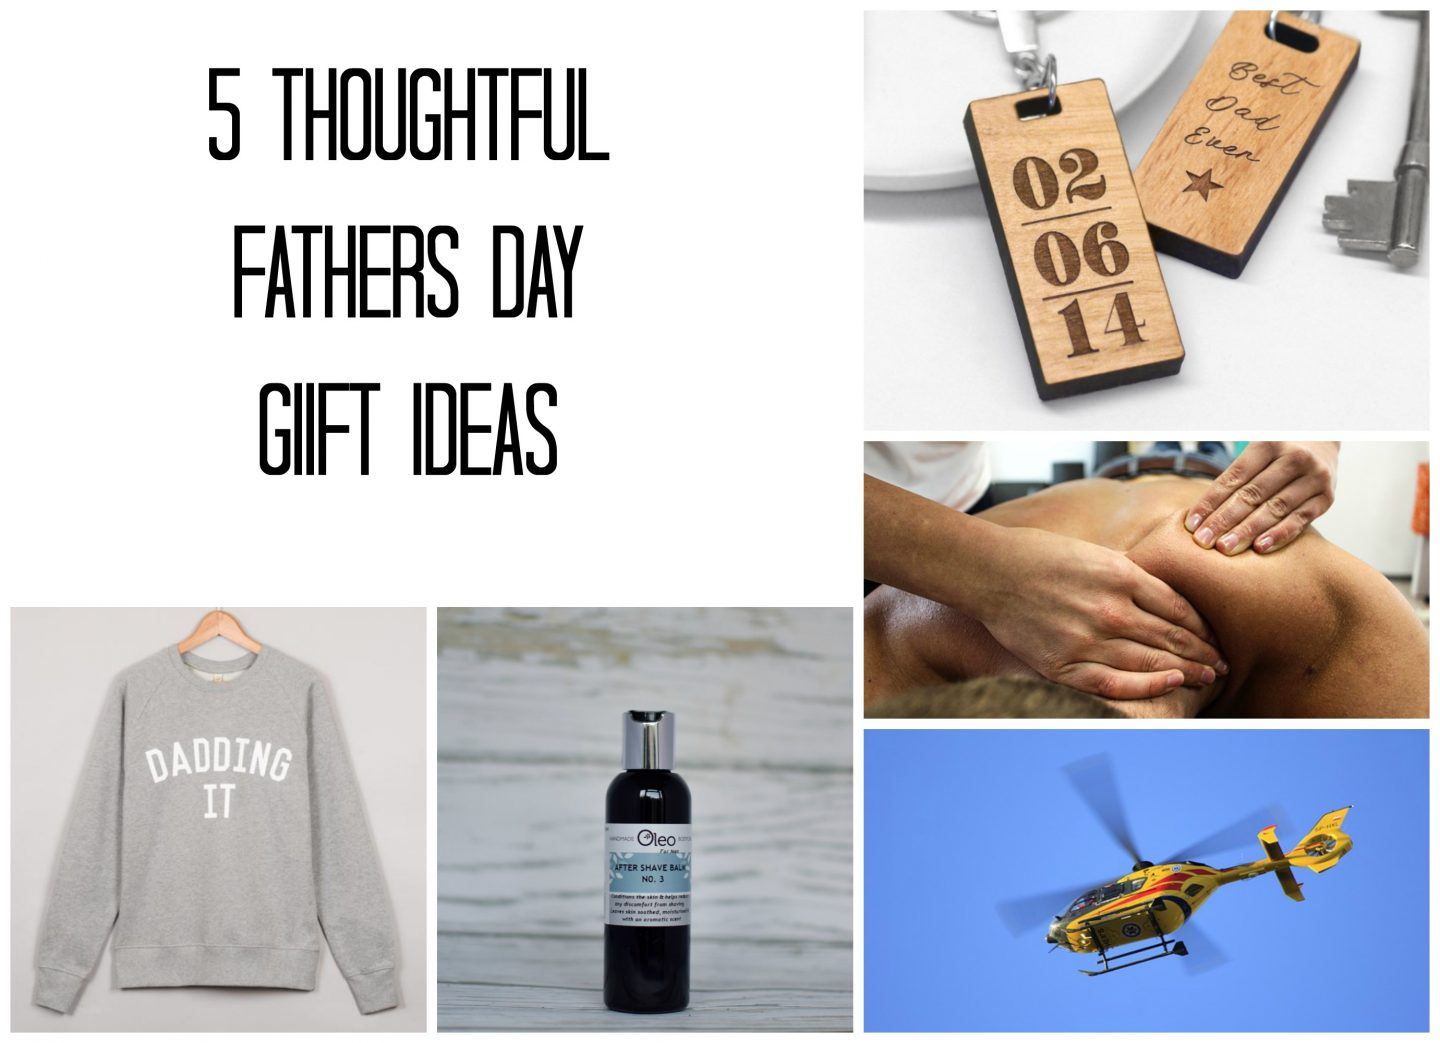 a gift guide of ideas for thoughtful fathers day presents